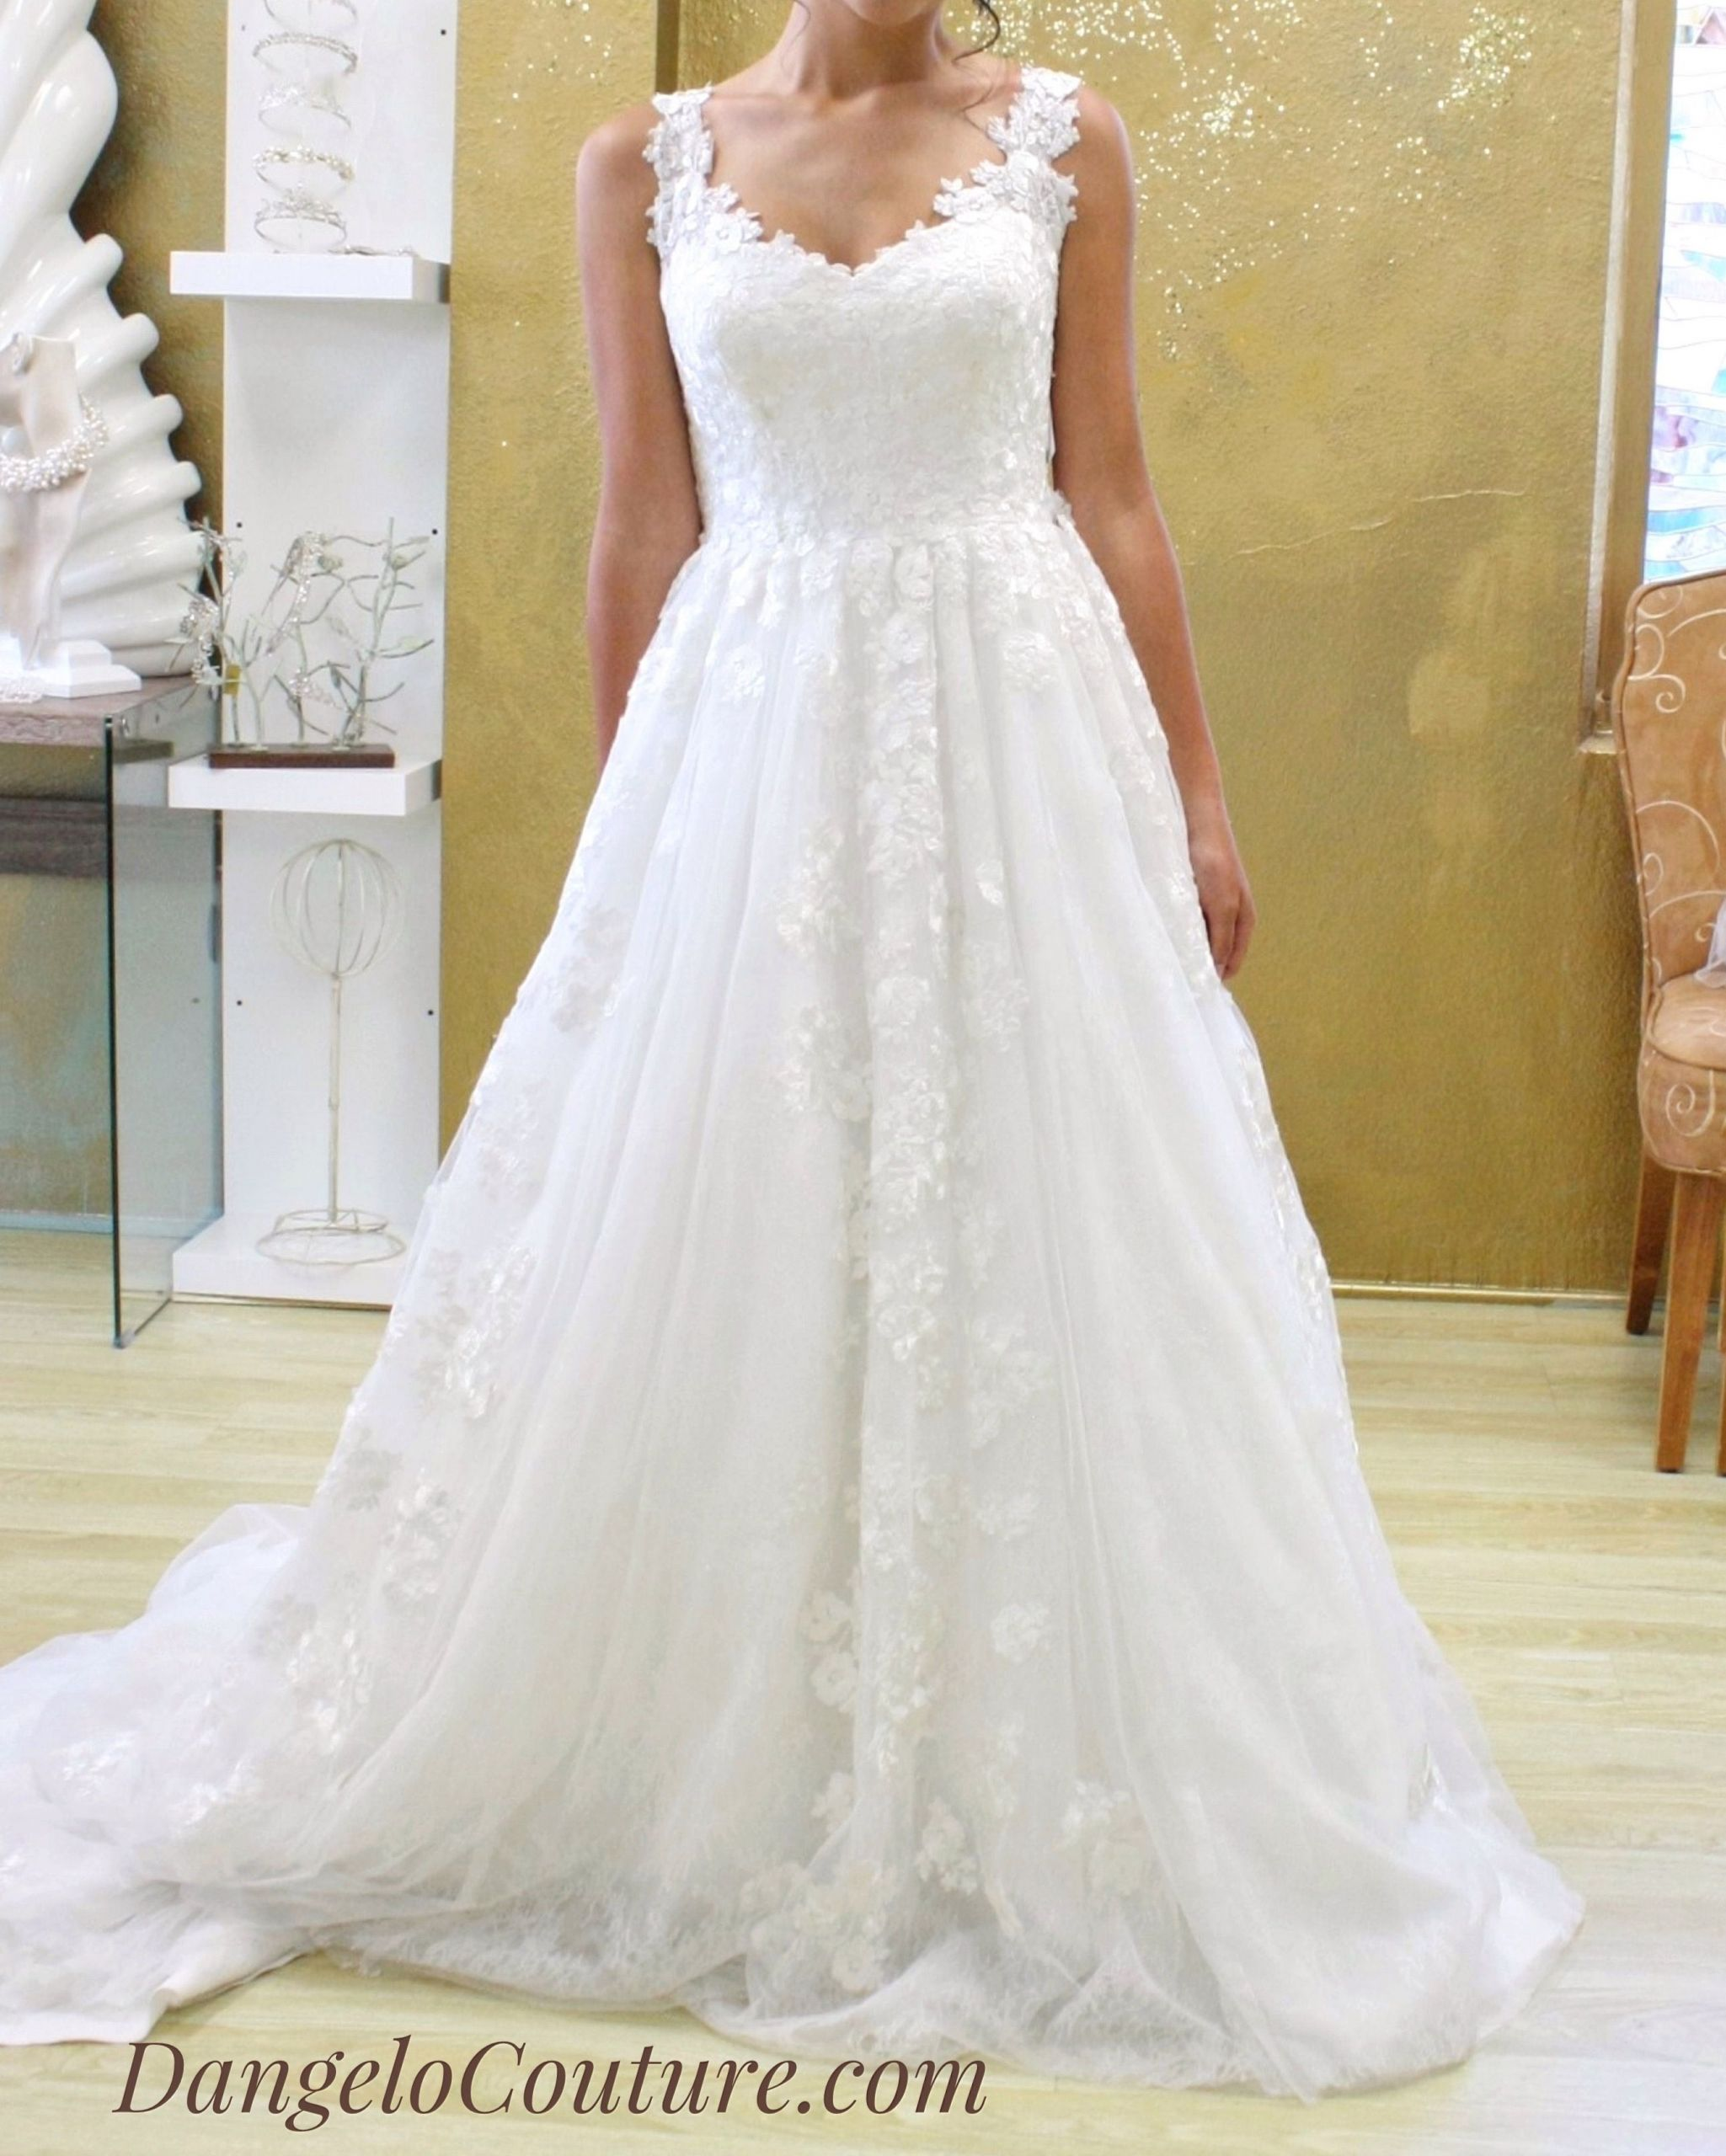 Wedding Gowns San Diego  Wedding Dresses at D Angelo Couture Bridal in San Diego